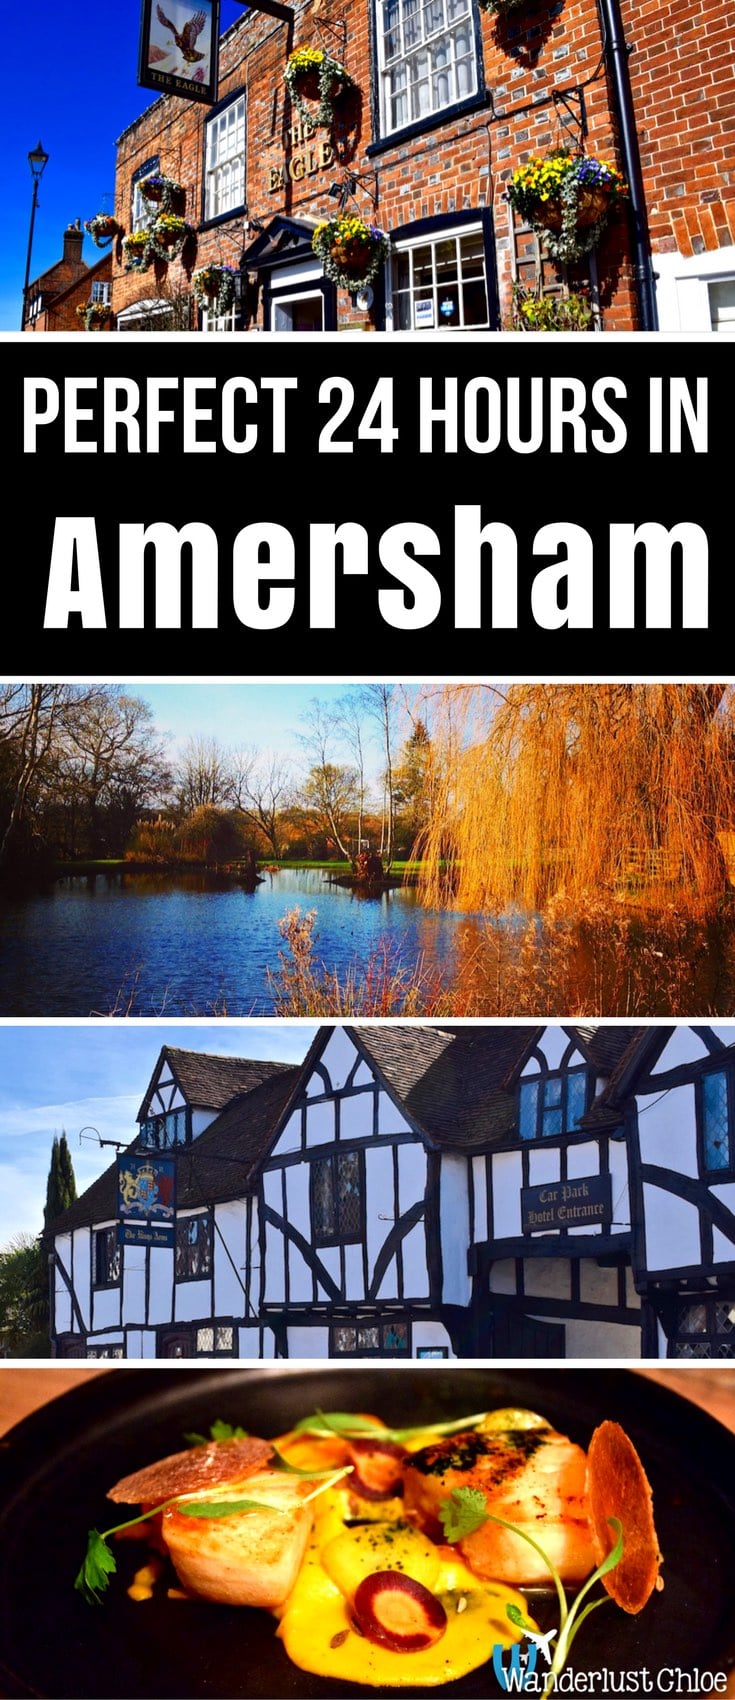 Perfect 24 Hours In Amersham